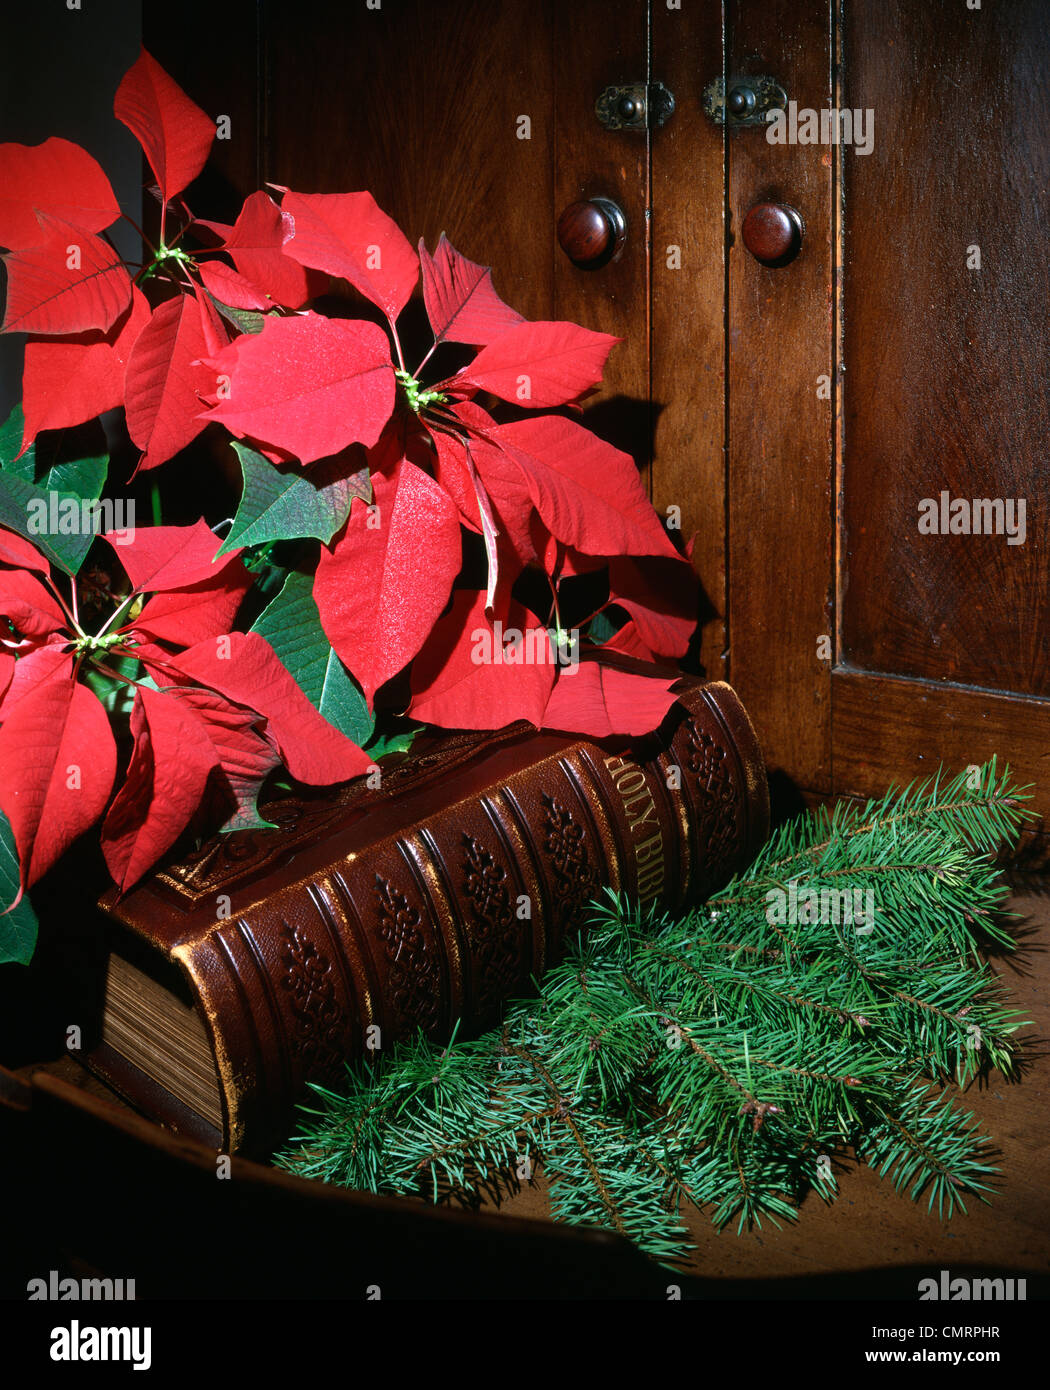 1979 1970 RETRO POINSETTIAS BIBLE Photo Stock